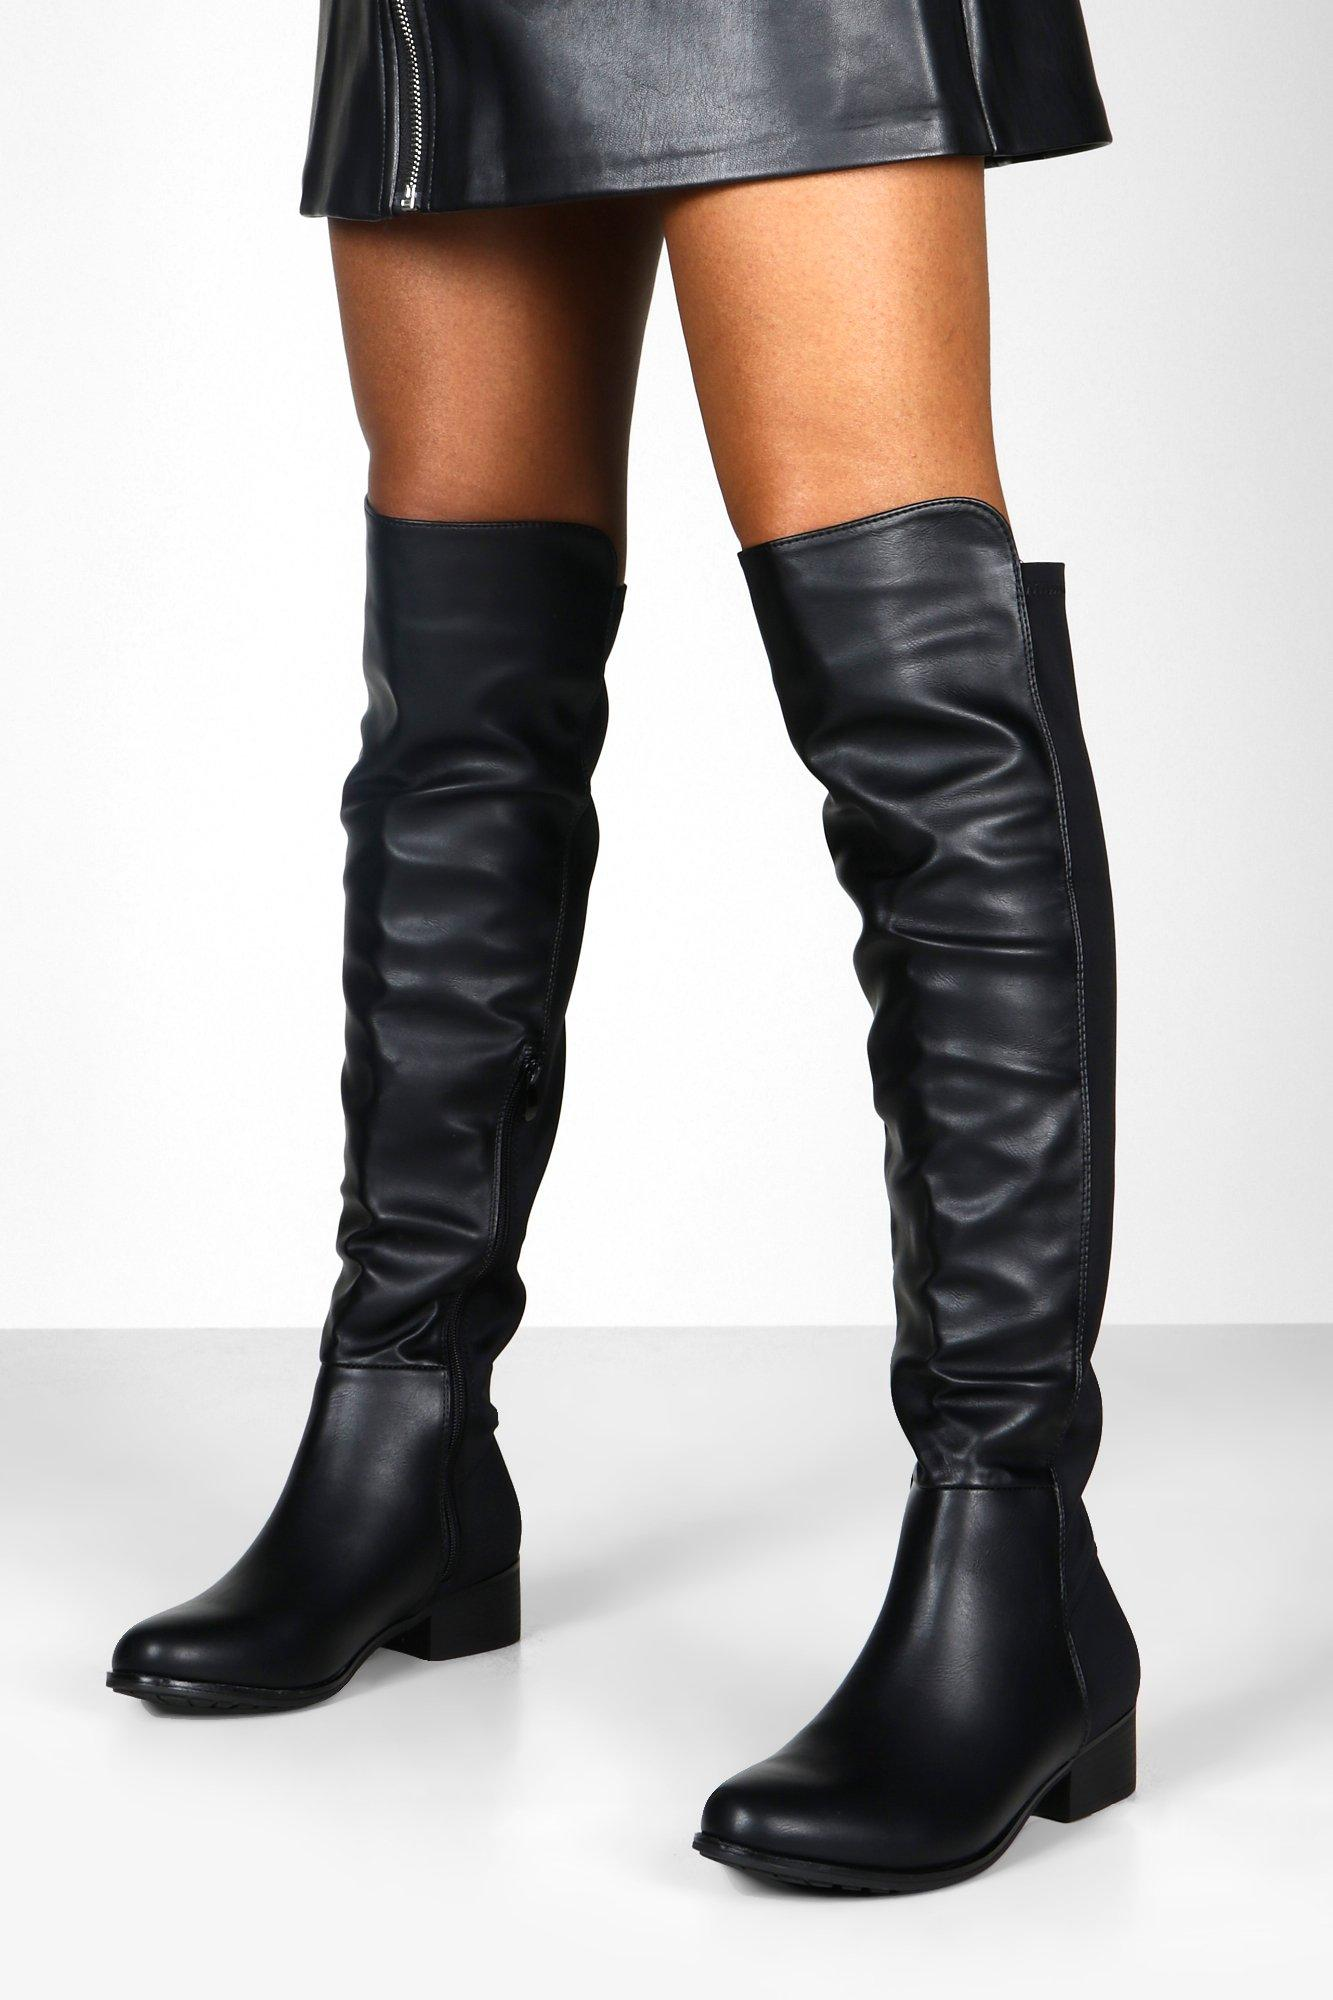 Wide Fit Elastic Back Flat Knee High Boots £ Pointed Peeptoe Thigh High Stretch Boots £ Thigh High Stretch Back Block Heel Boots £ Knee high & over the knee boots The underrated classic knee high boot can help you to take your outfit to the next level. Step fashion-forward with boohoo's collection that can help you.